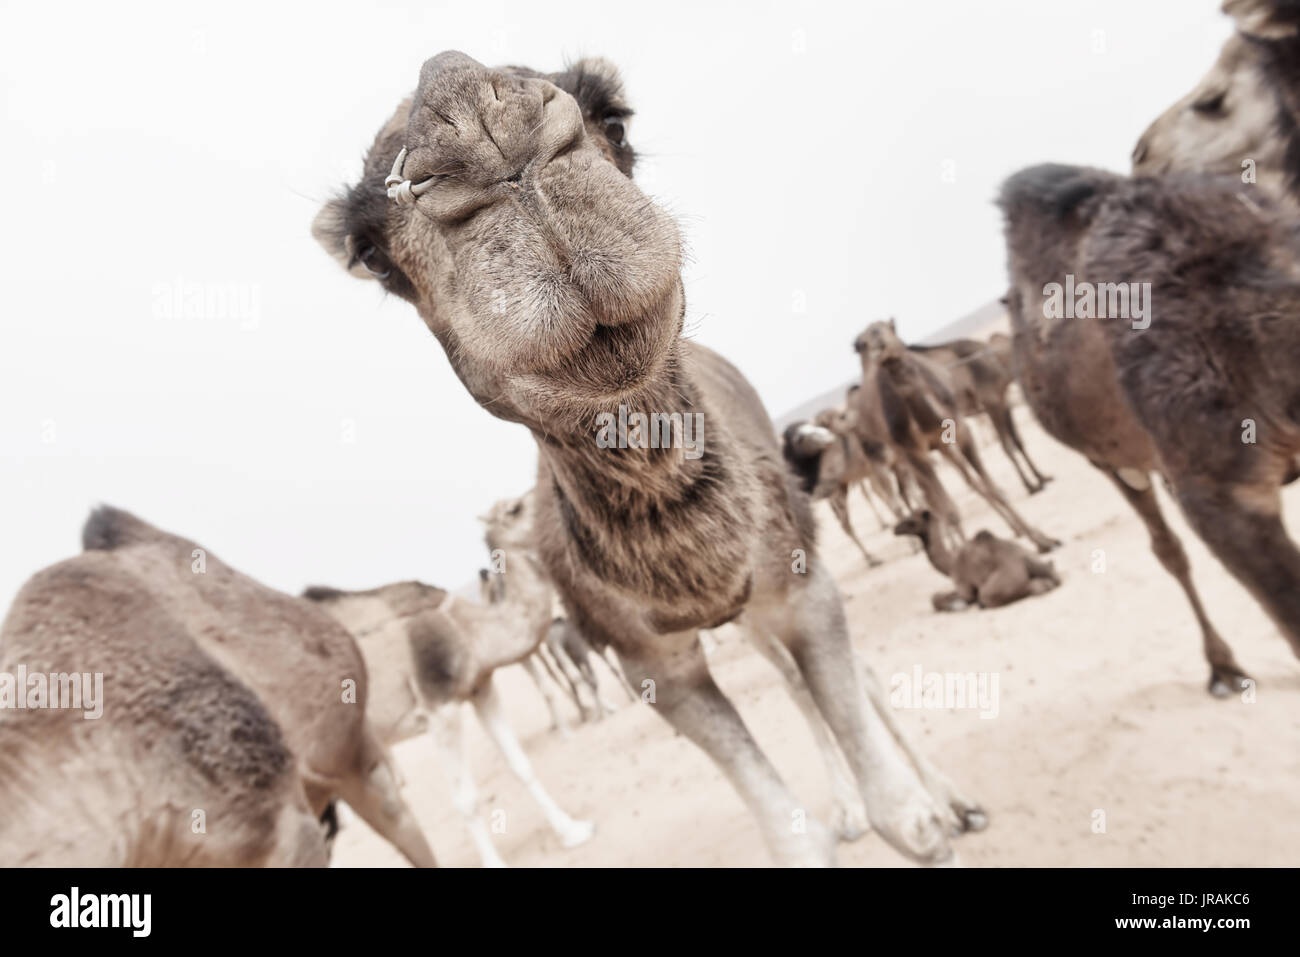 Funny closeup of a camel face focusing on the mouth. High key, shallow dept of field image. - Stock Image